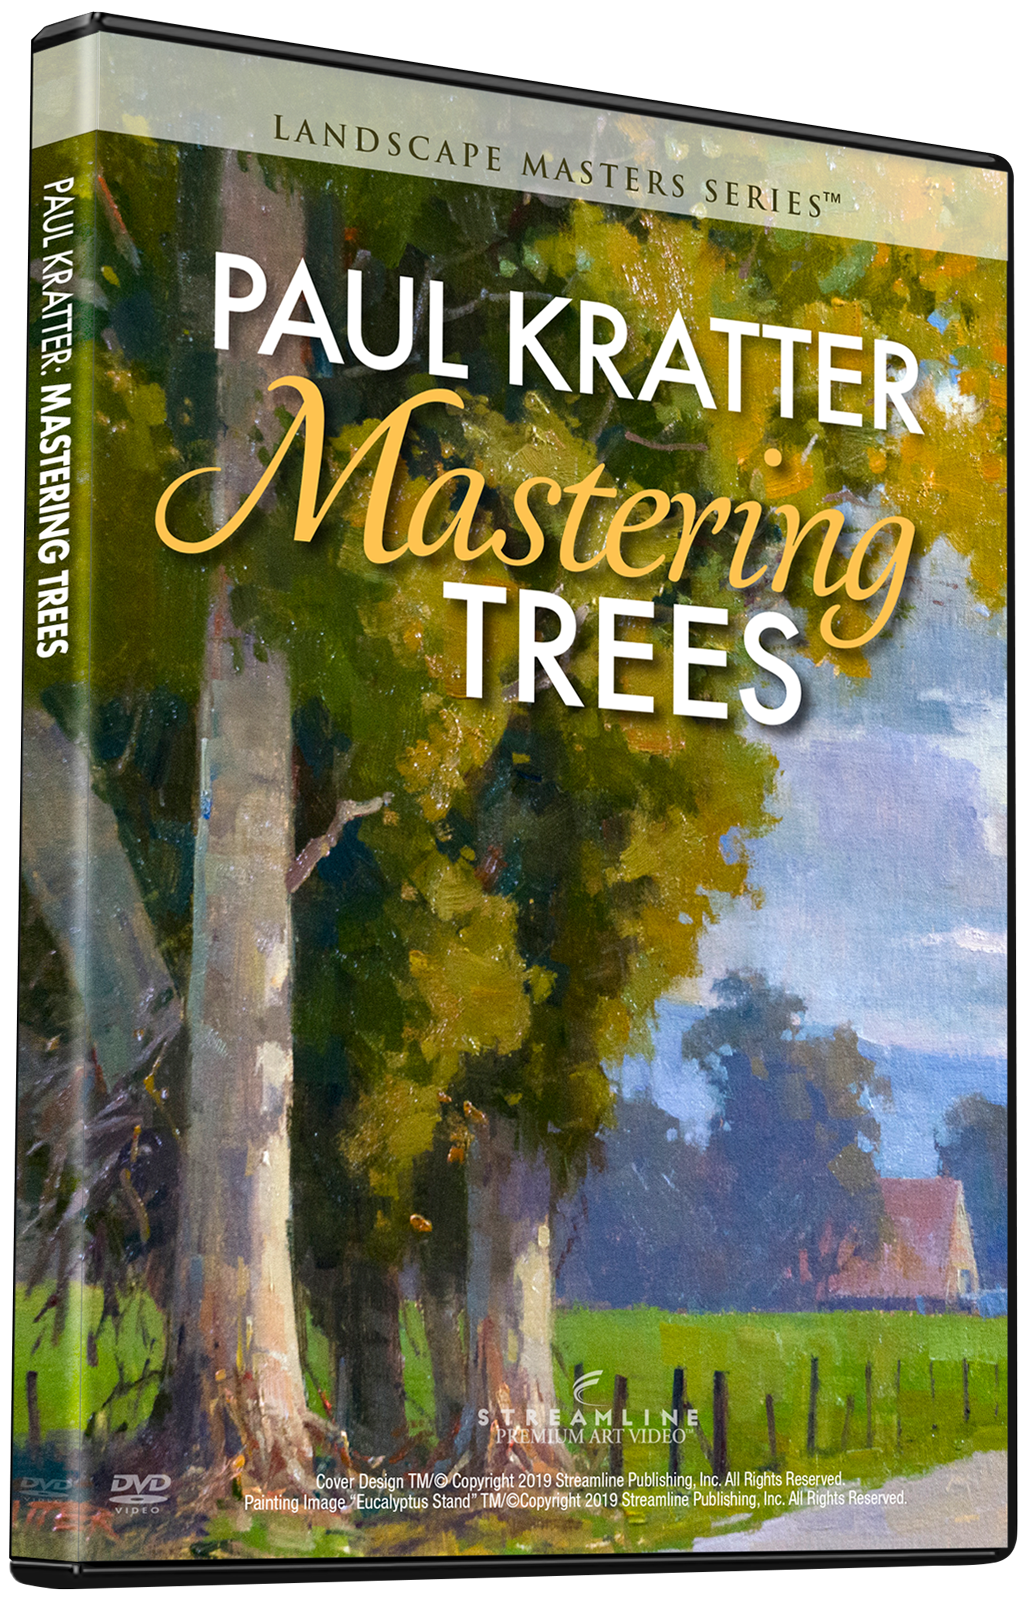 Paul Kratter: Mastering Trees